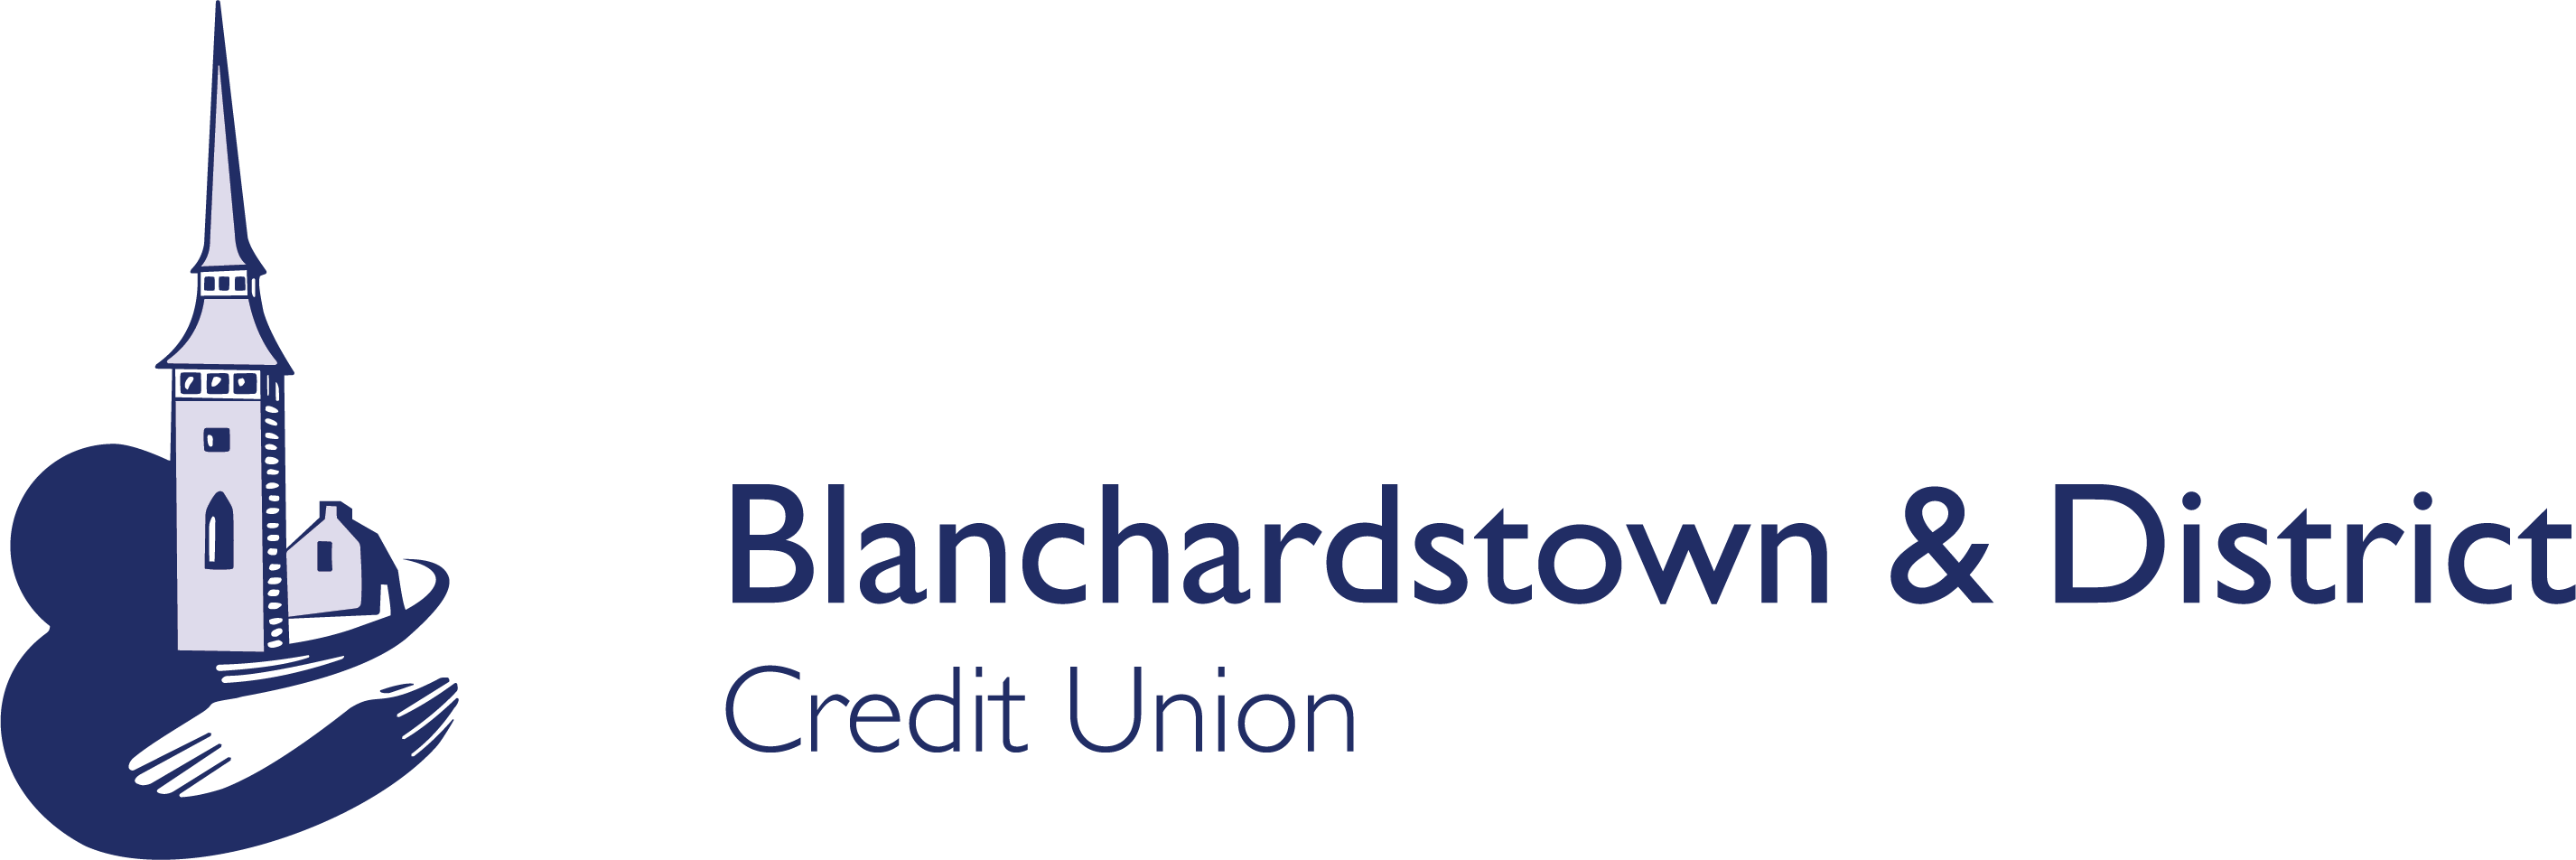 Blanchardstown And District Credit Union